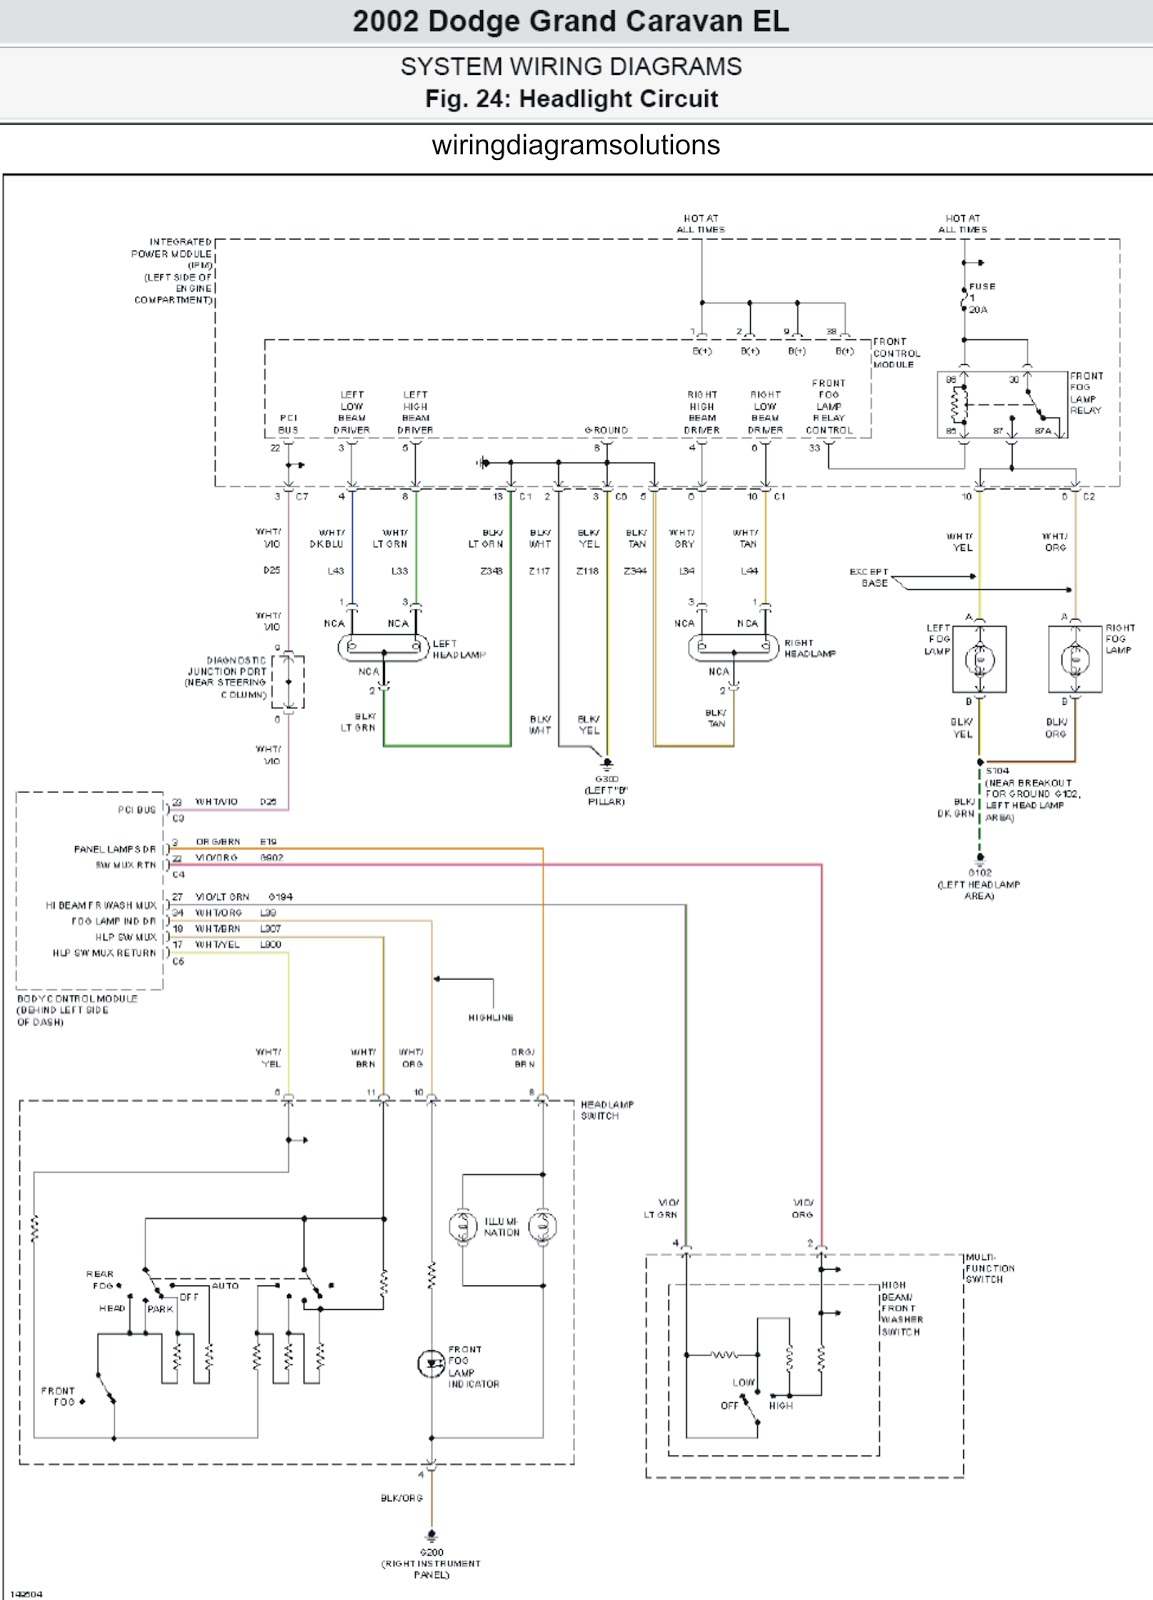 2002 dodge grand caravan el system wiring diagrams ... 2006 caravan wiring diagram